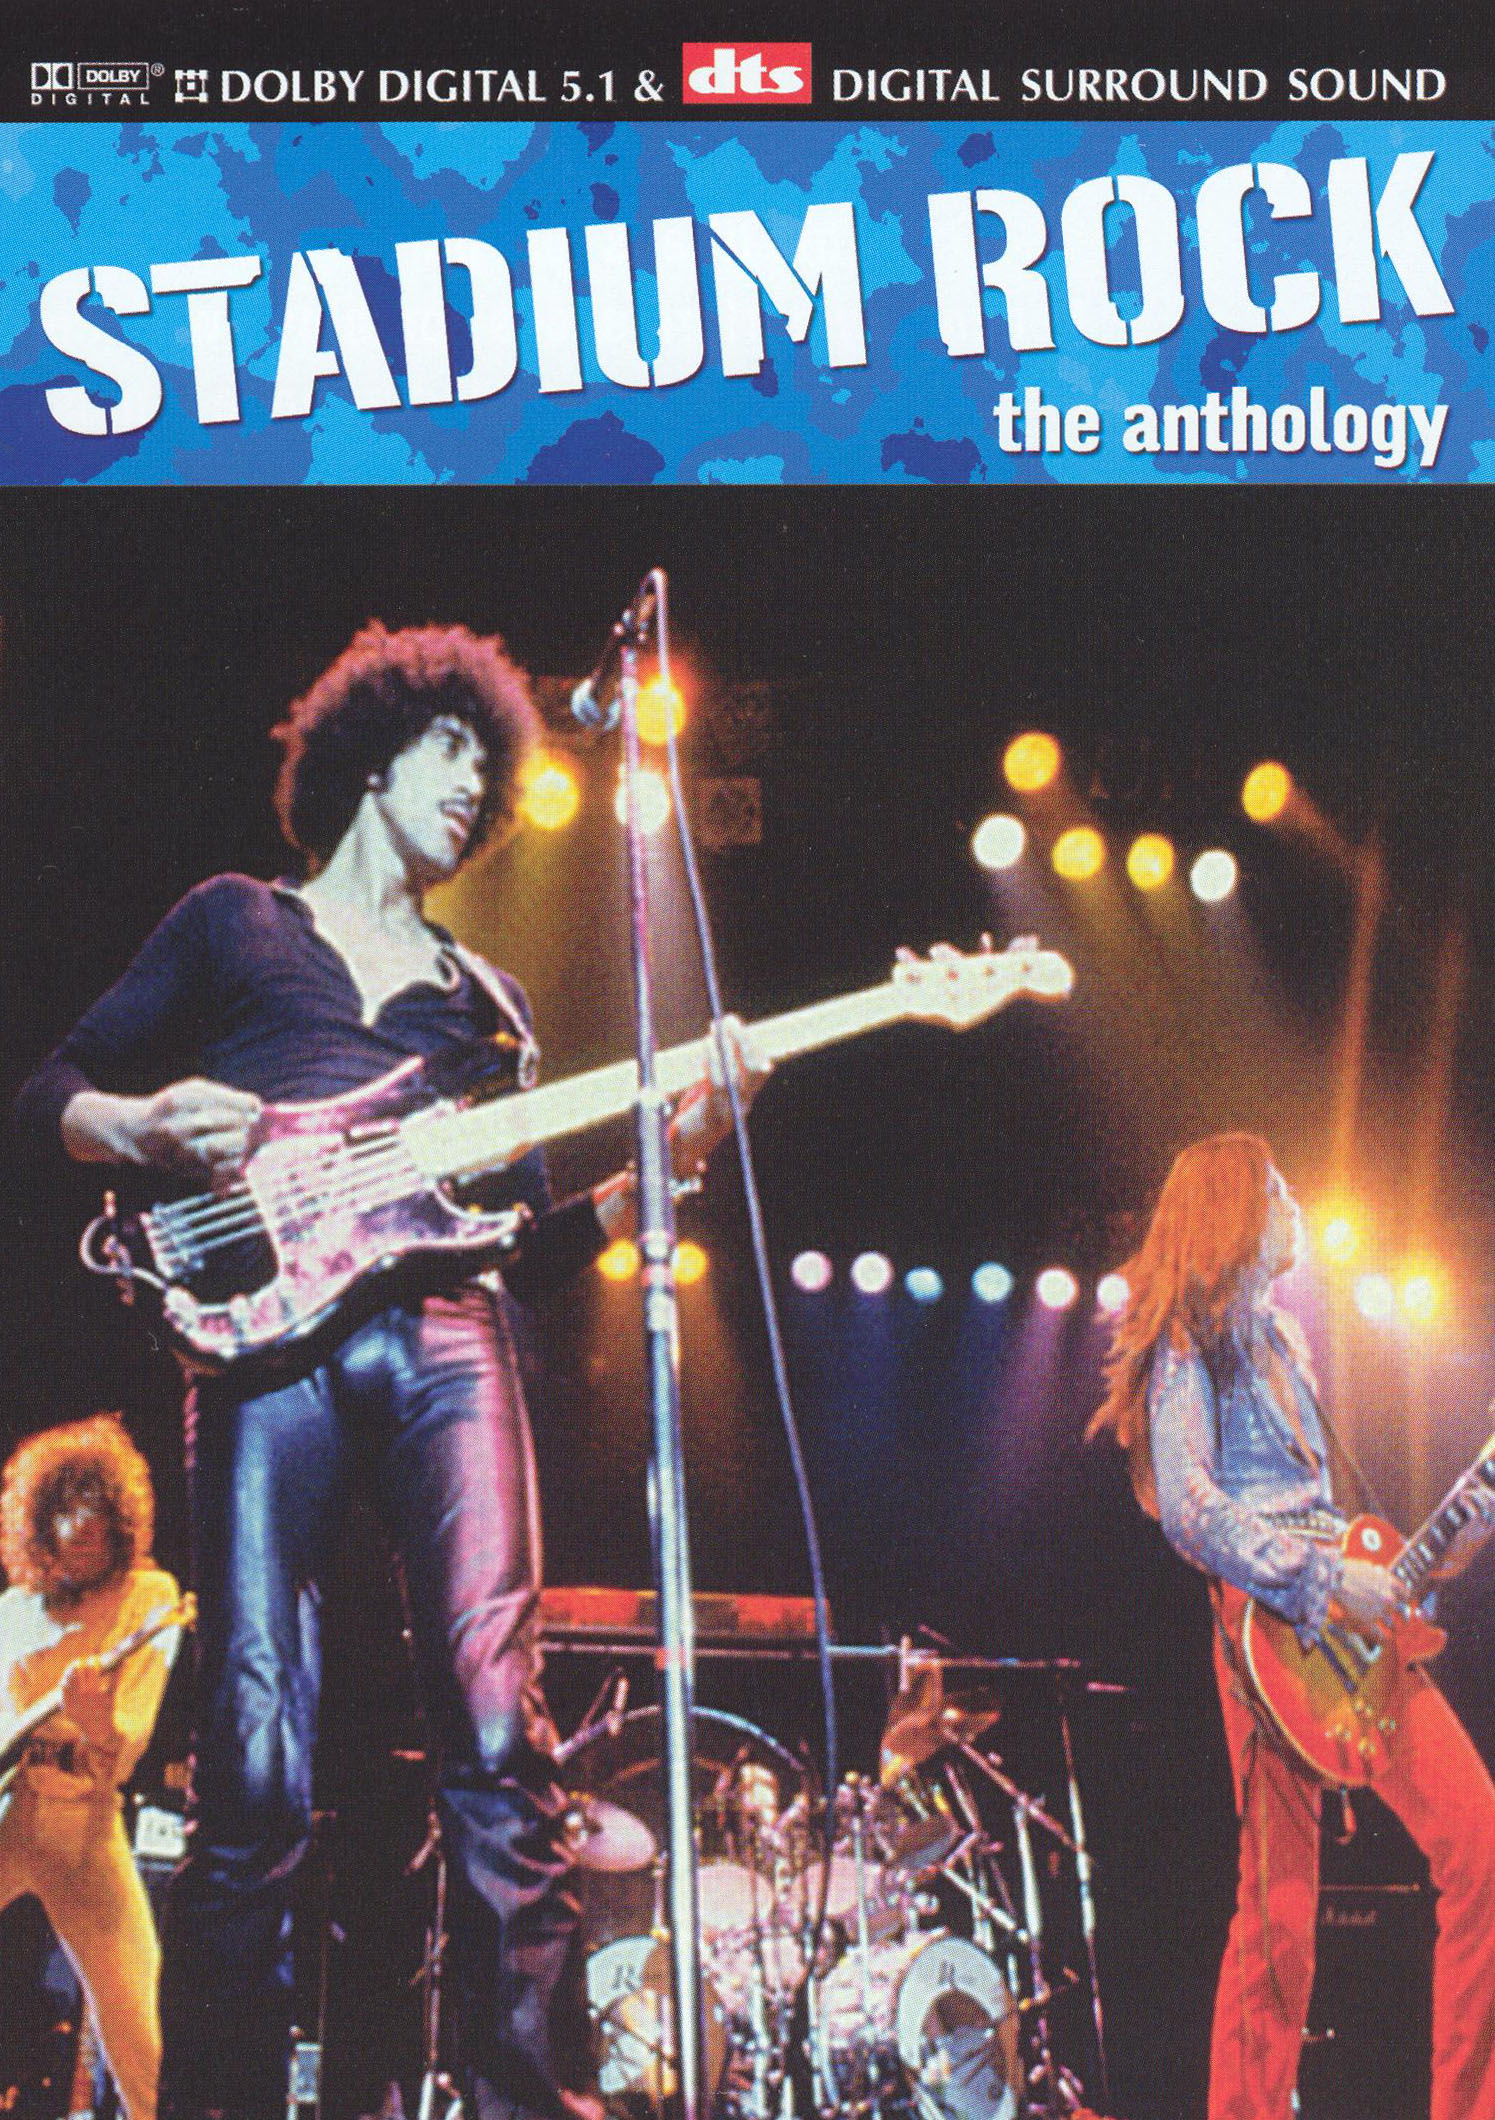 Stadium Rock: The Anthology